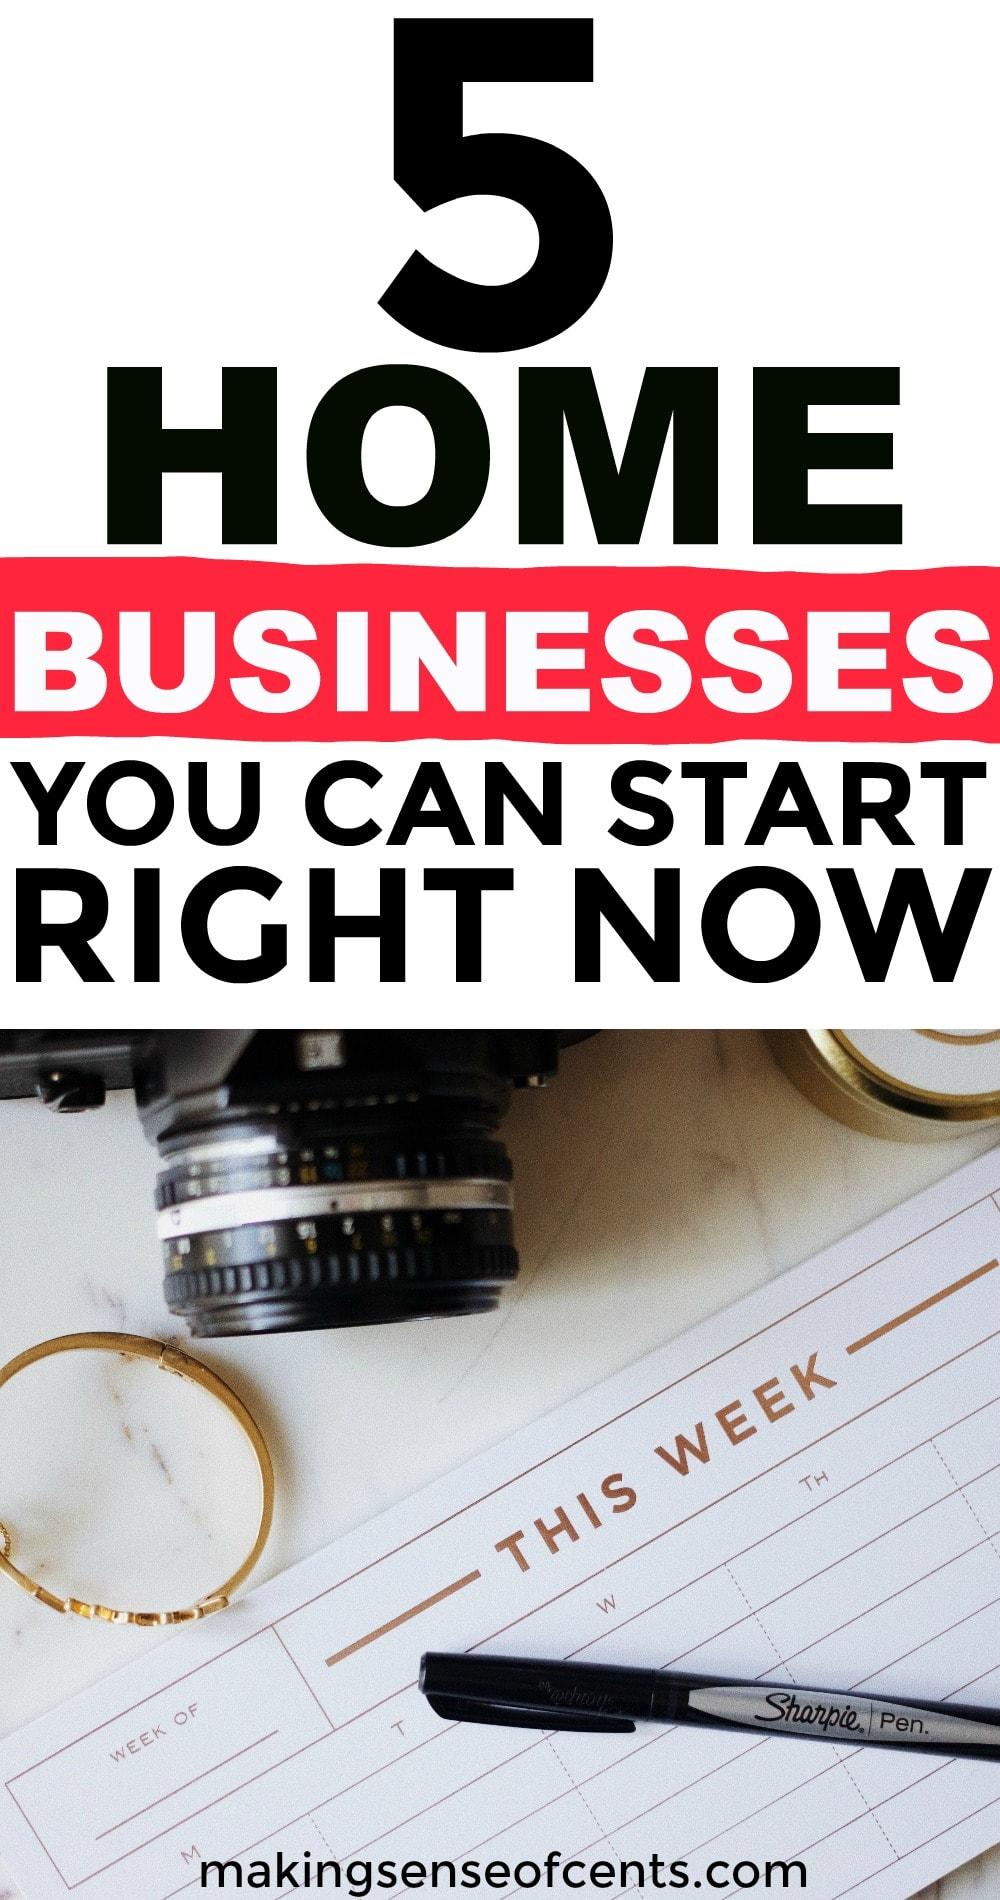 Check out this list of 5 home businesses you can start right now. This is a great list!